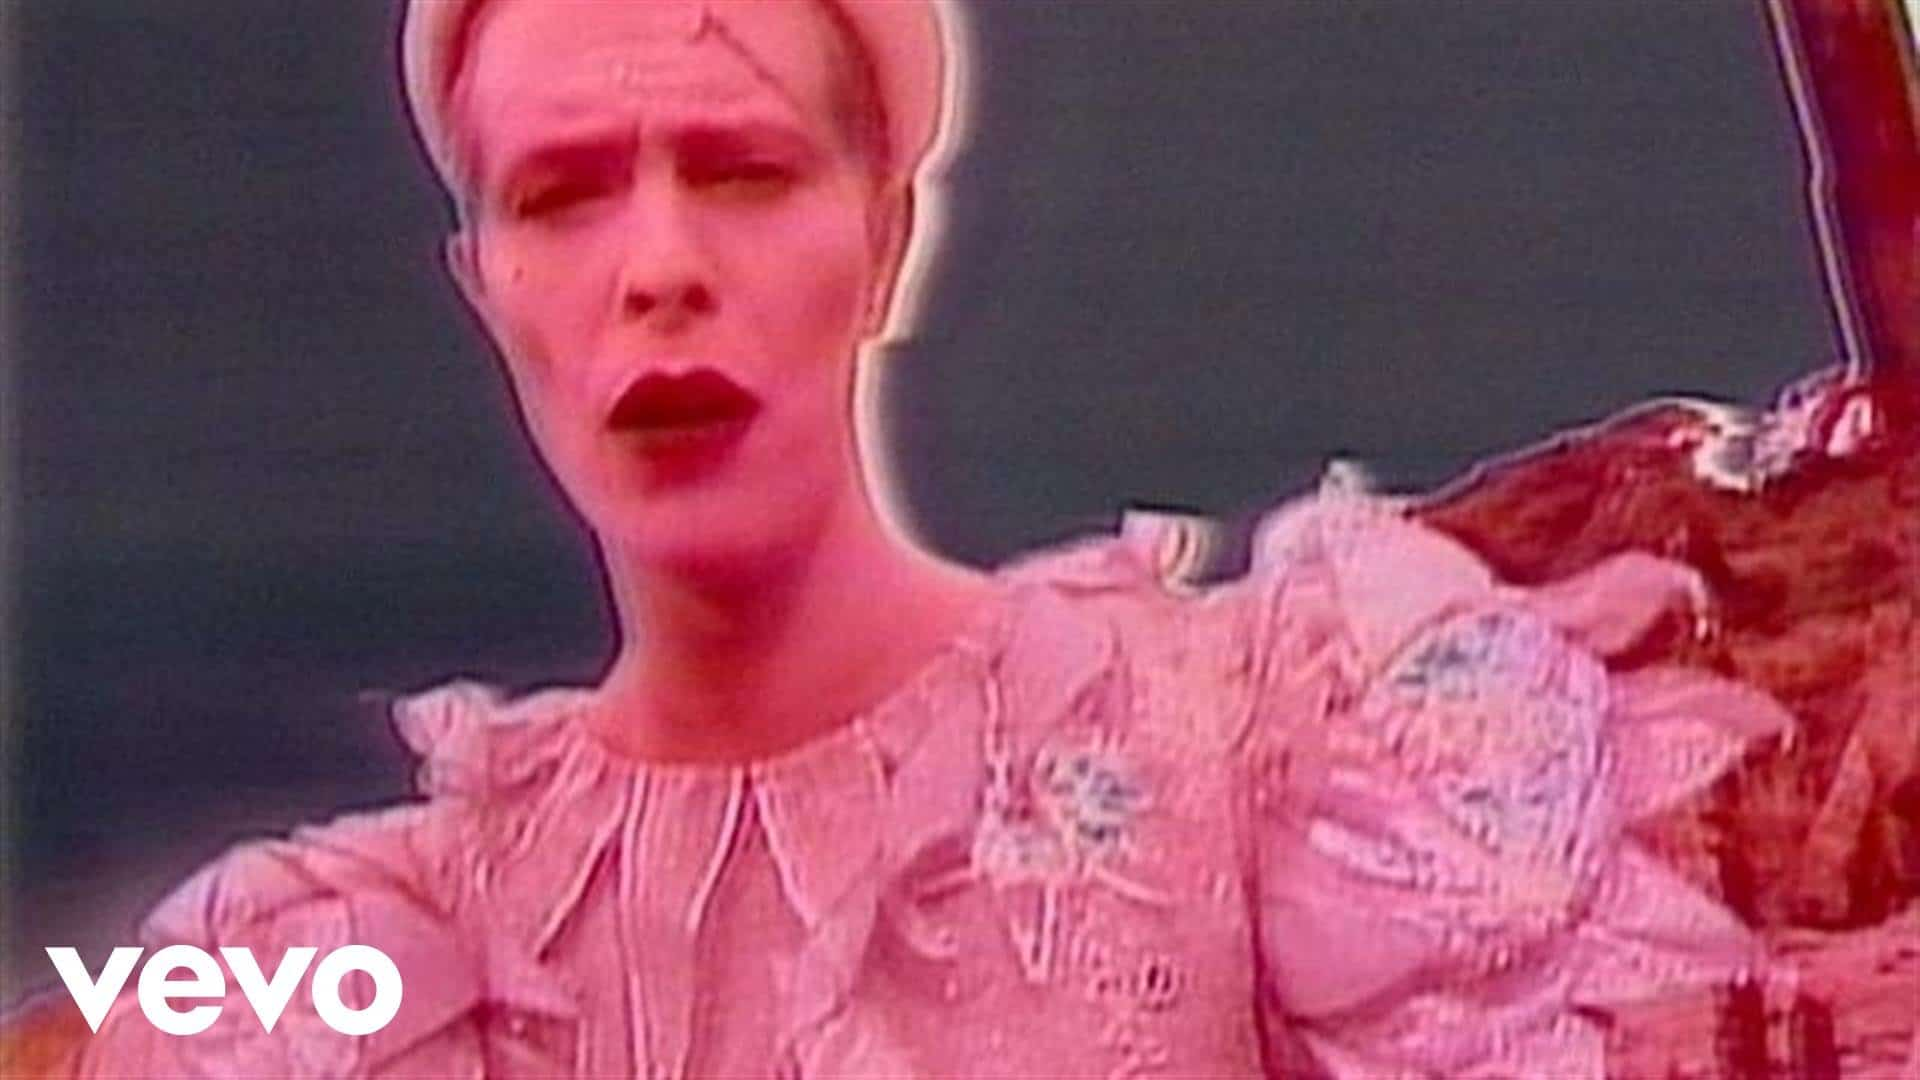 David Bowie – Ashes To Ashes